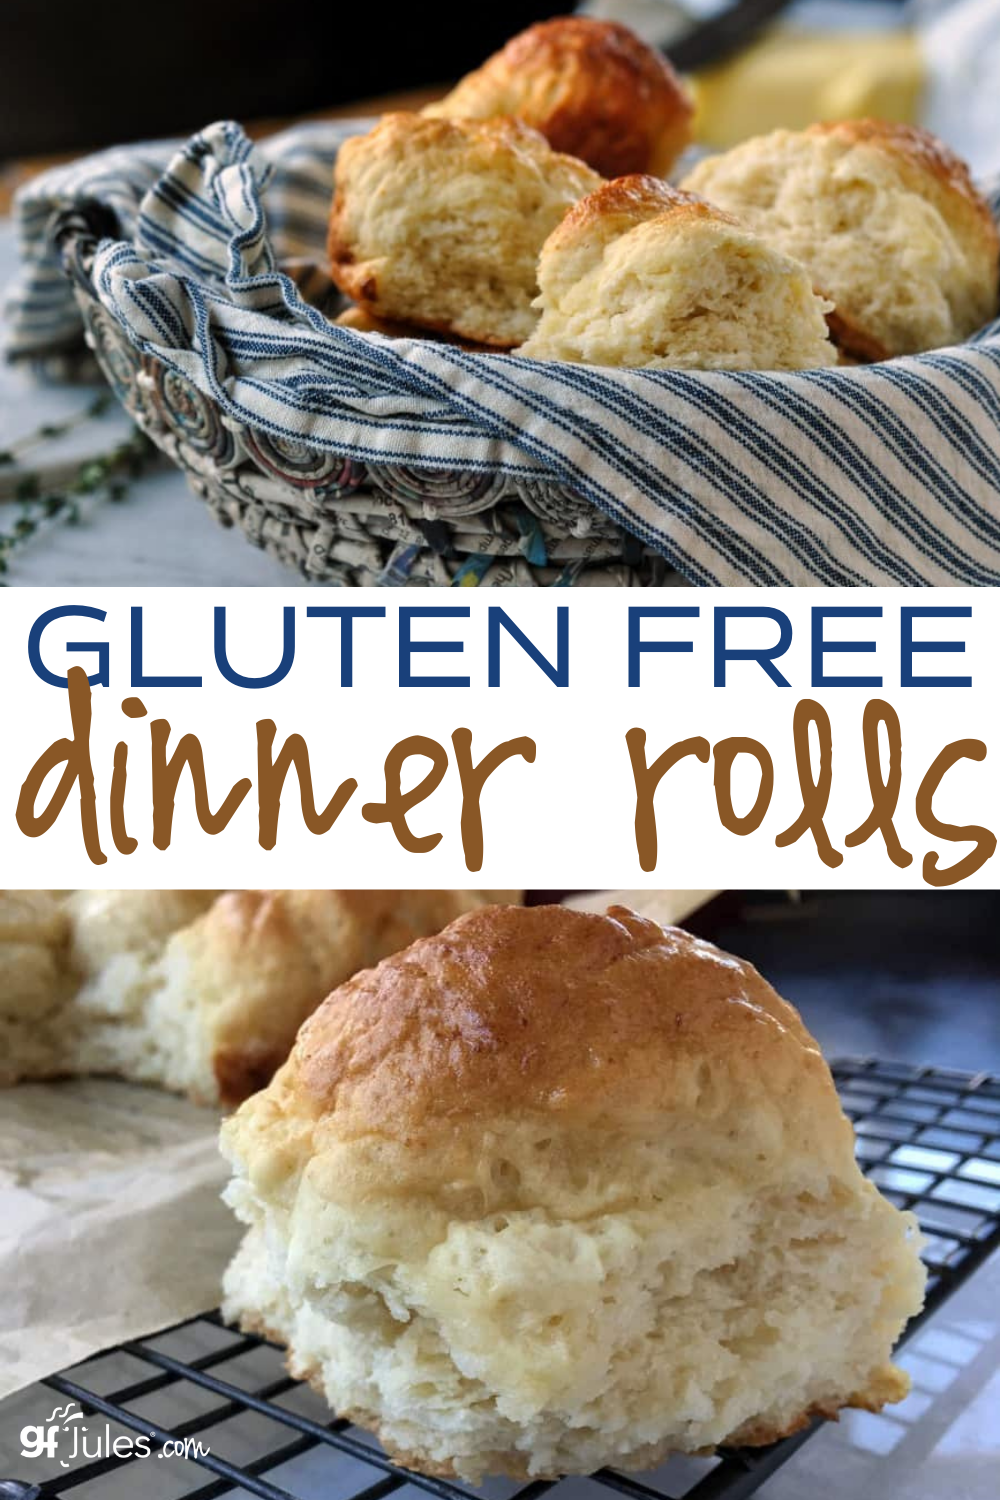 Gluten Free Pull Apart Dinner Rolls Pillowy Soft Parker House Style Gfjules Recipe In 2020 Dinner Rolls Gluten Free Dinner Rolls Bread Recipes Sweet